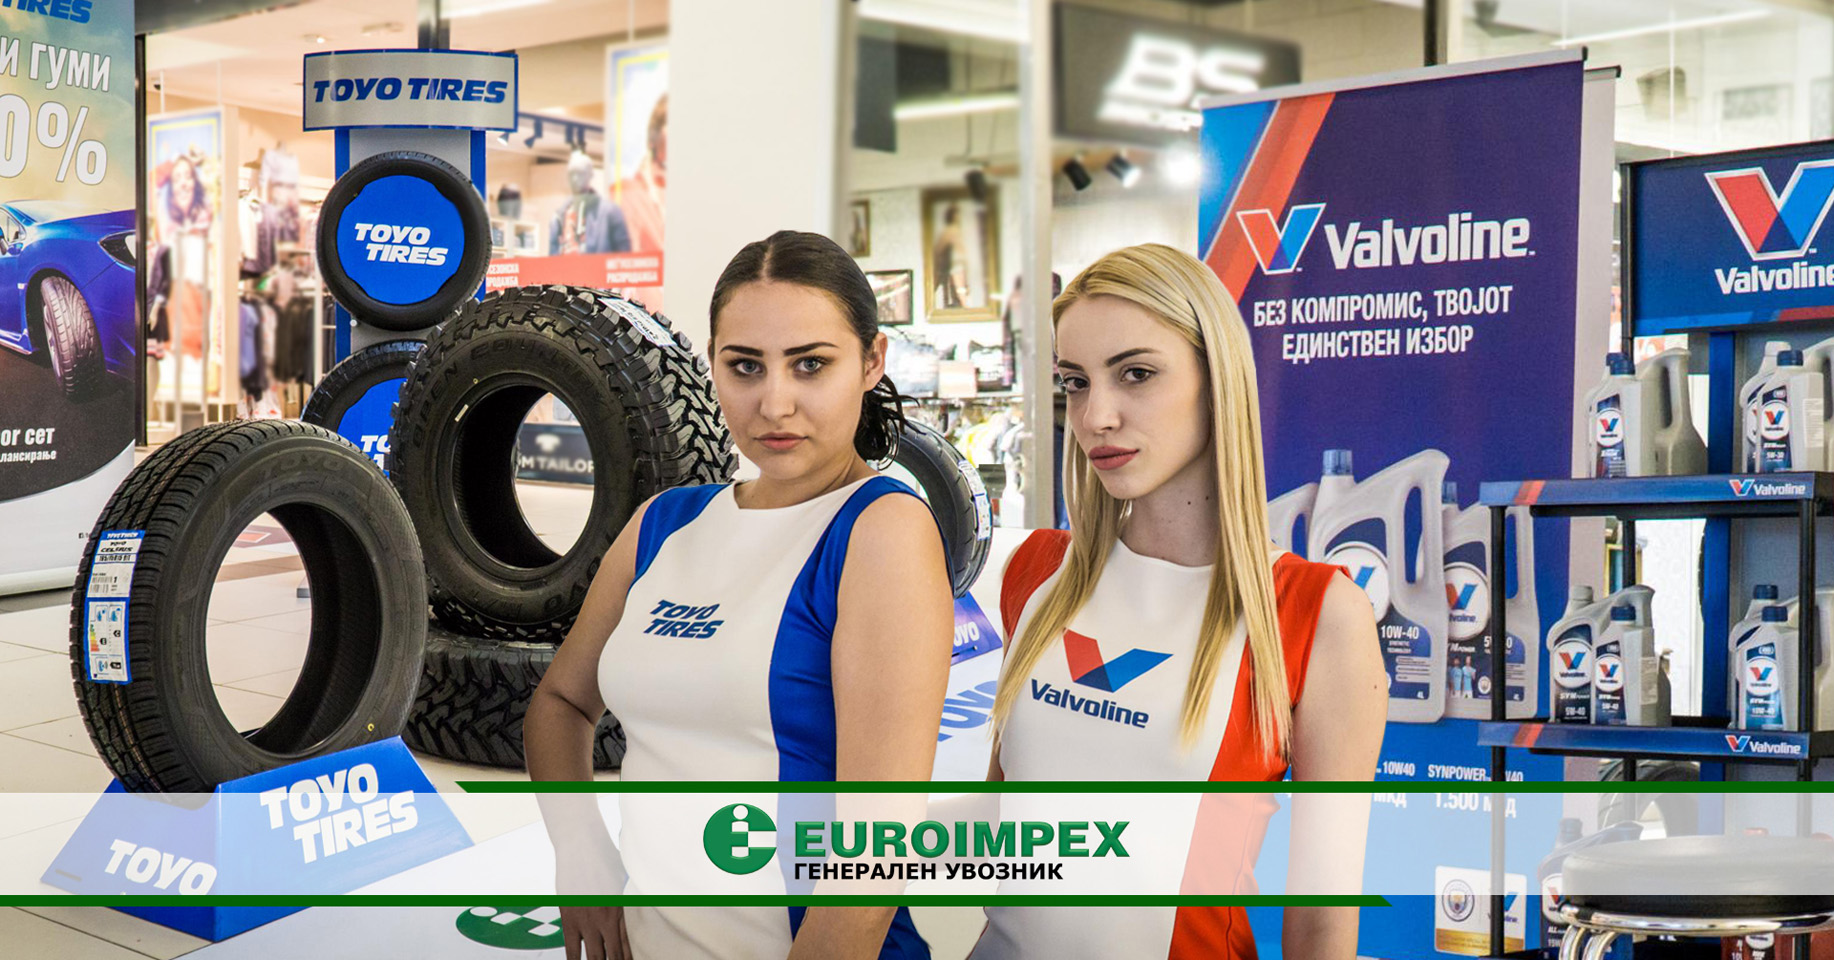 Euroimpex with the latest offers of the brands Valvoline and Toyo Tires at City Mall